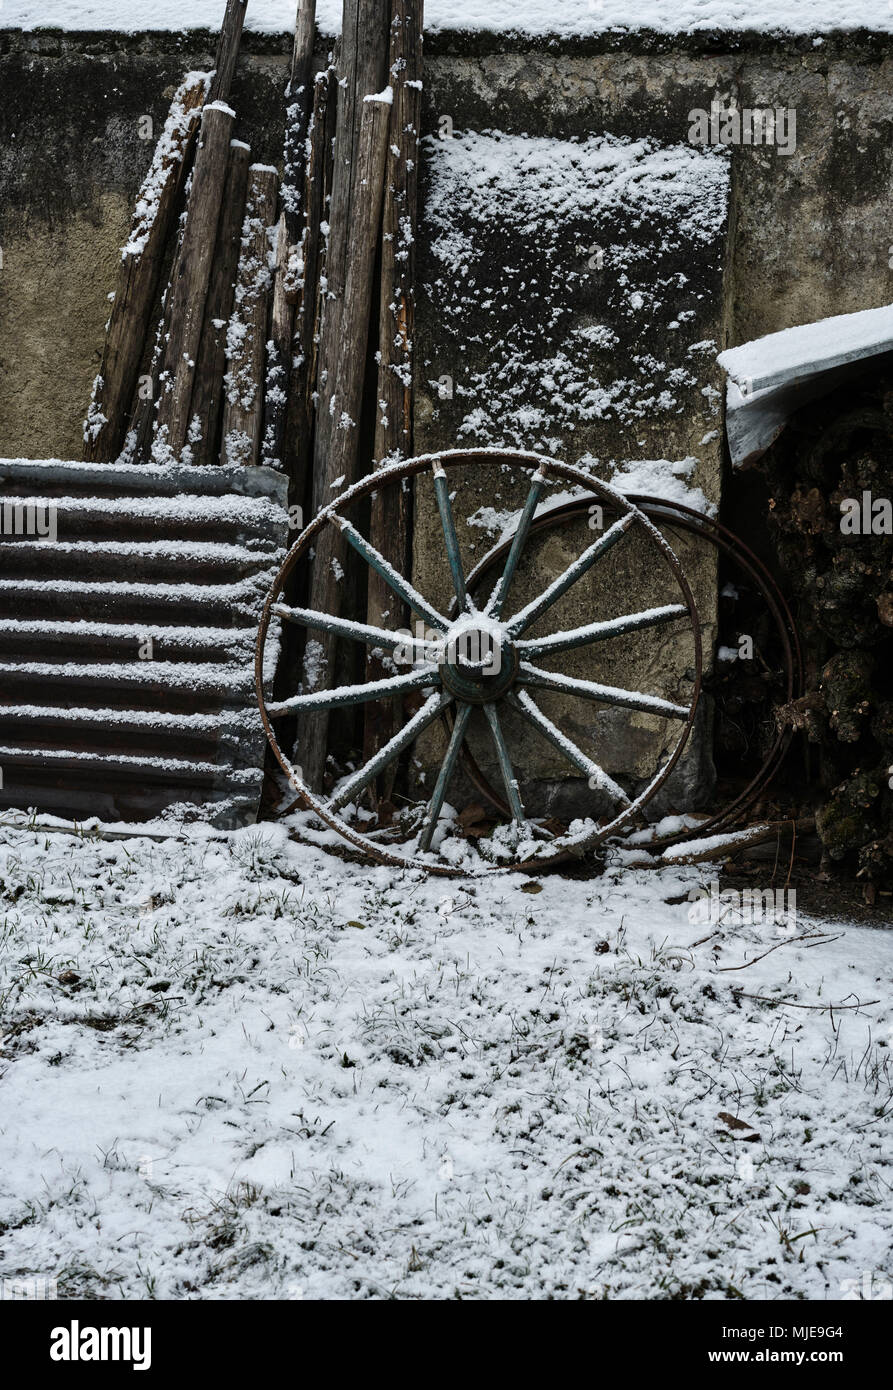 Farm, old cartwheel, corrugated iron and wood on a wall, snow - Stock Image